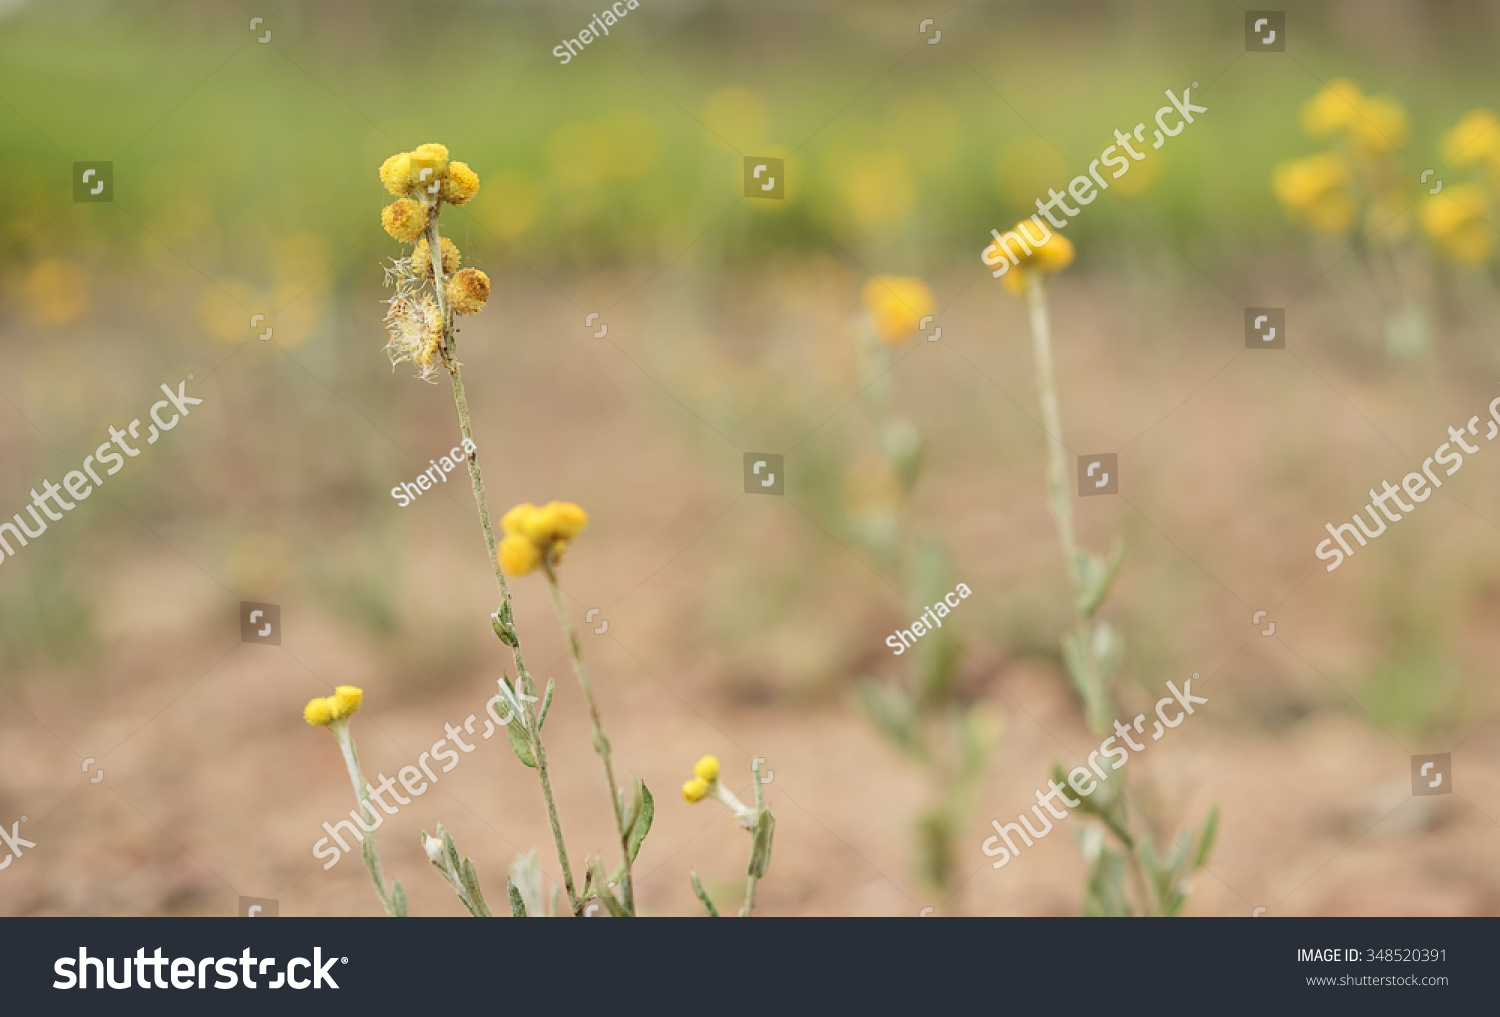 Royalty free australian spring wildflowers panorama 348520391 australian spring wildflowers panorama with yellow buttons woollyheads or billy buttons a daisy like plant in flower in eucalypt grassland izmirmasajfo